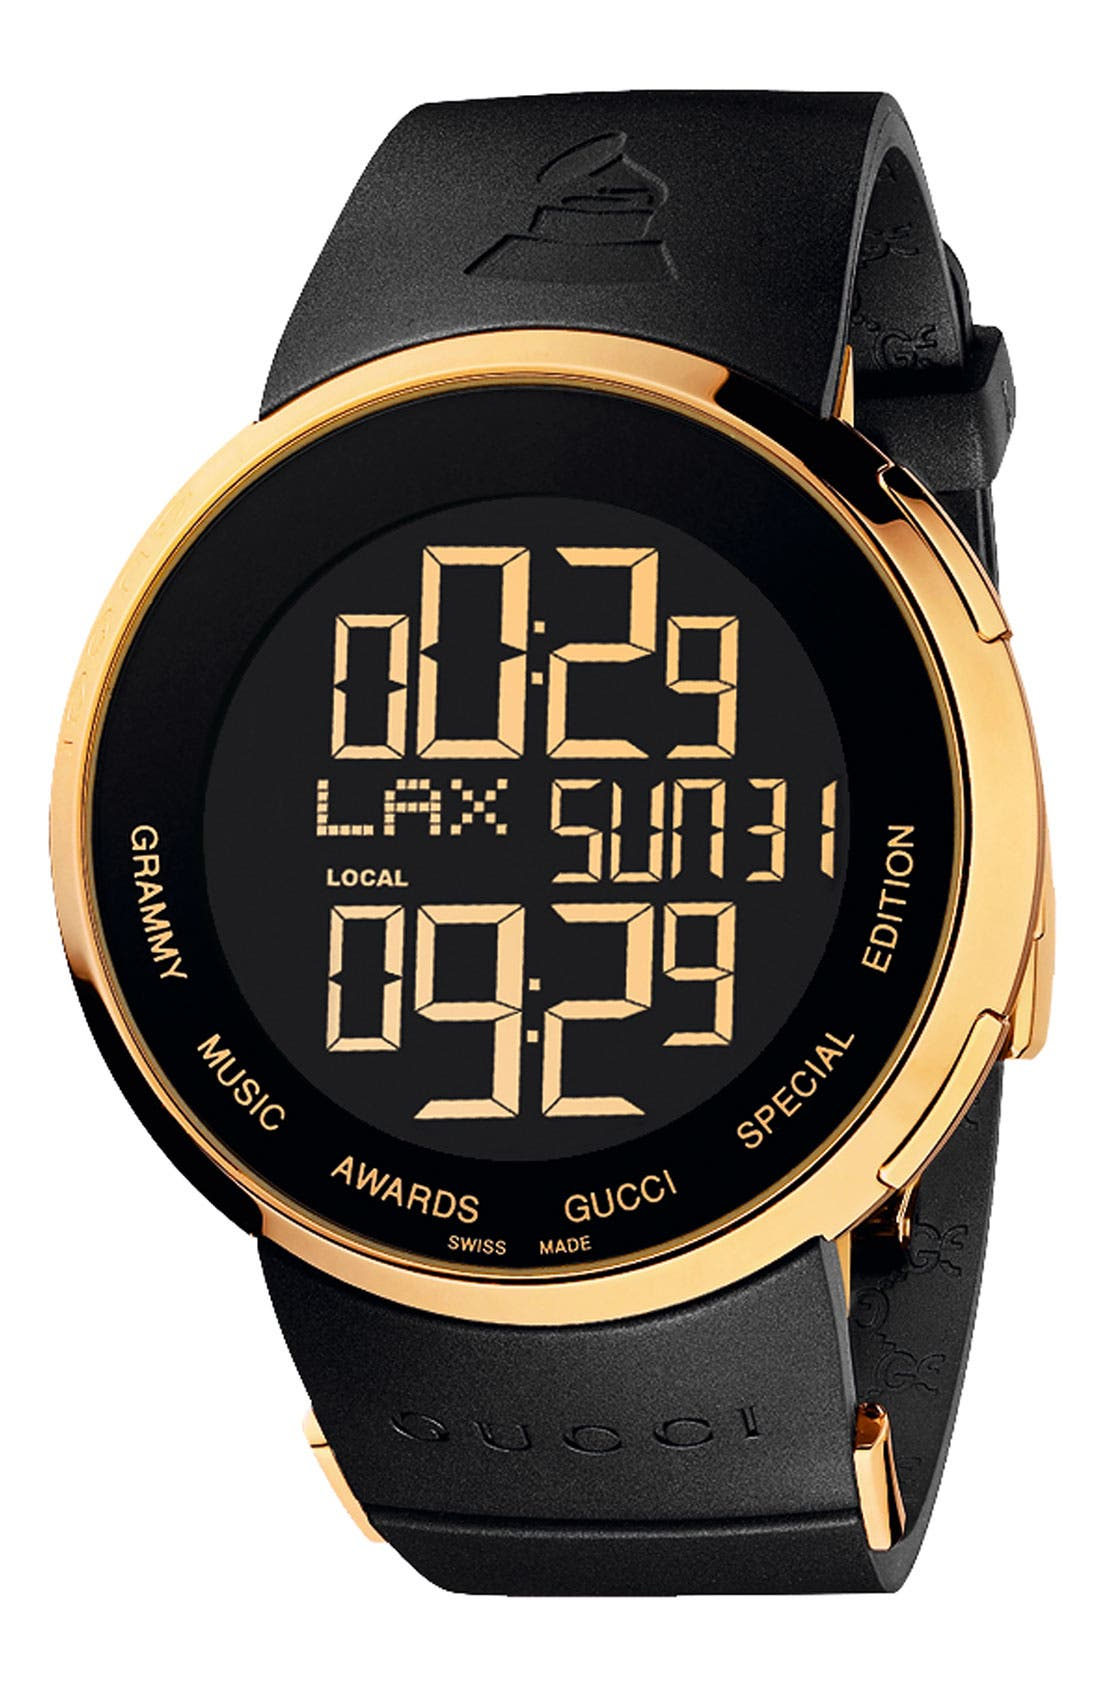 Alternate Image 1 Selected - Gucci 'I Gucci - Grammy' Digital Watch, 44mm